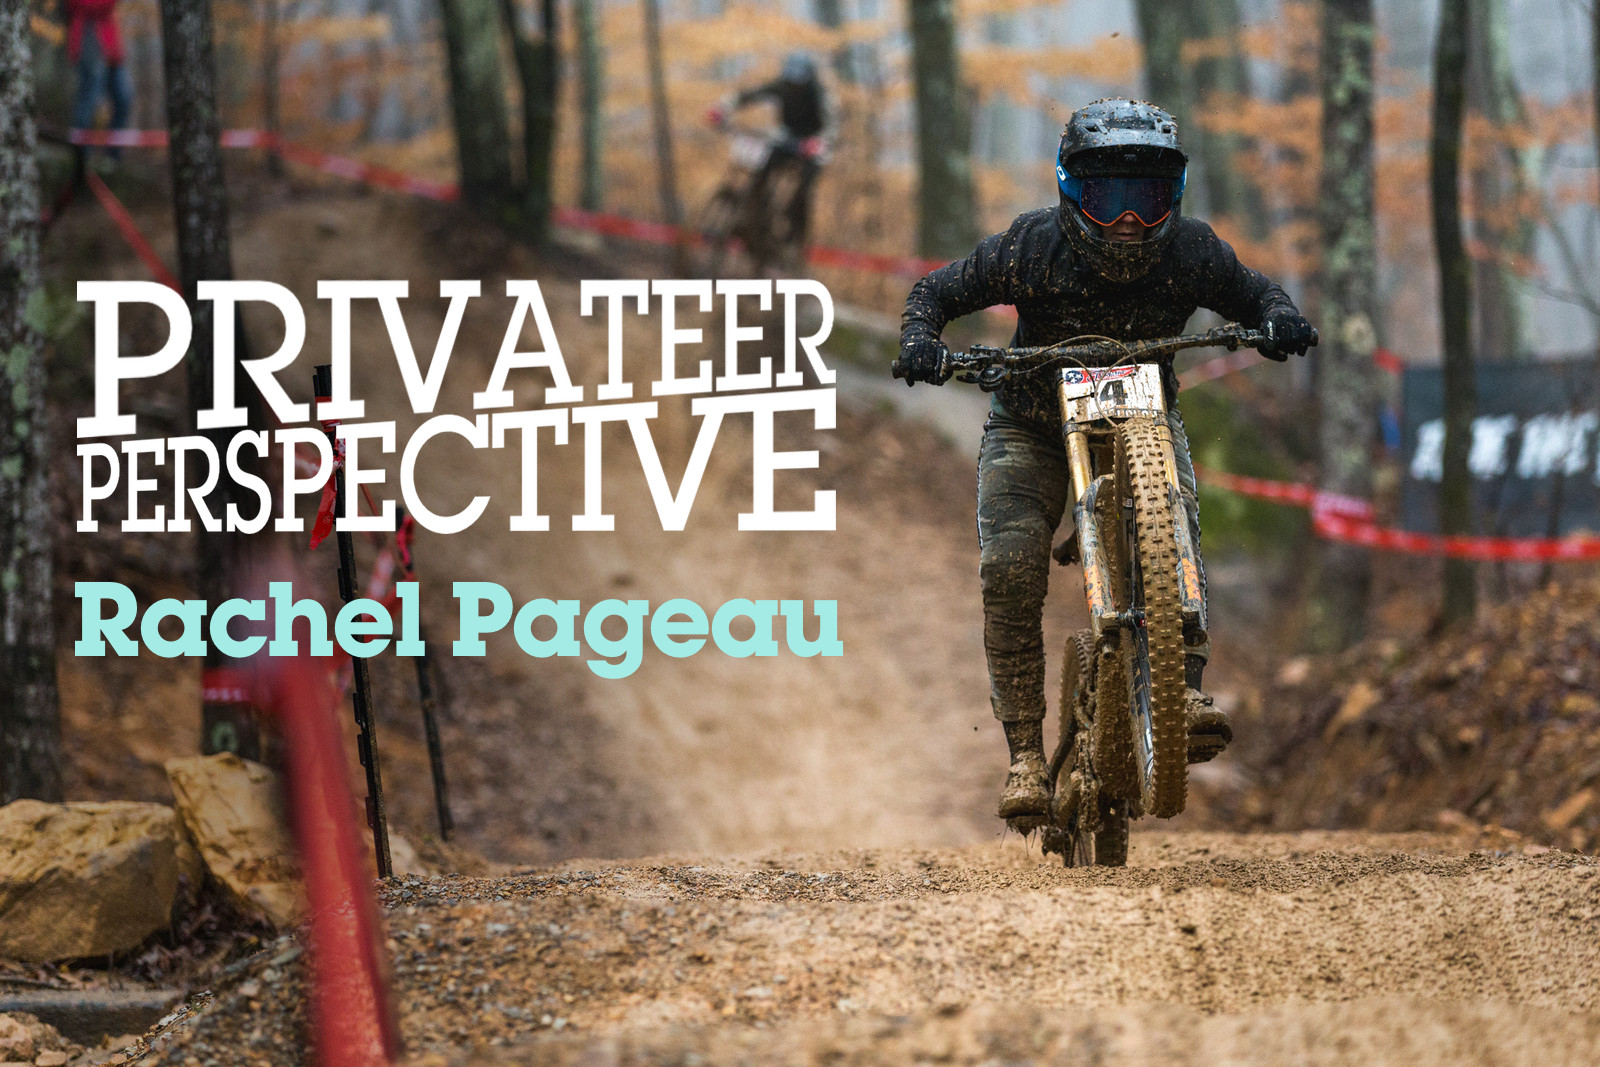 Privateer Perspective: Rachel Pageau